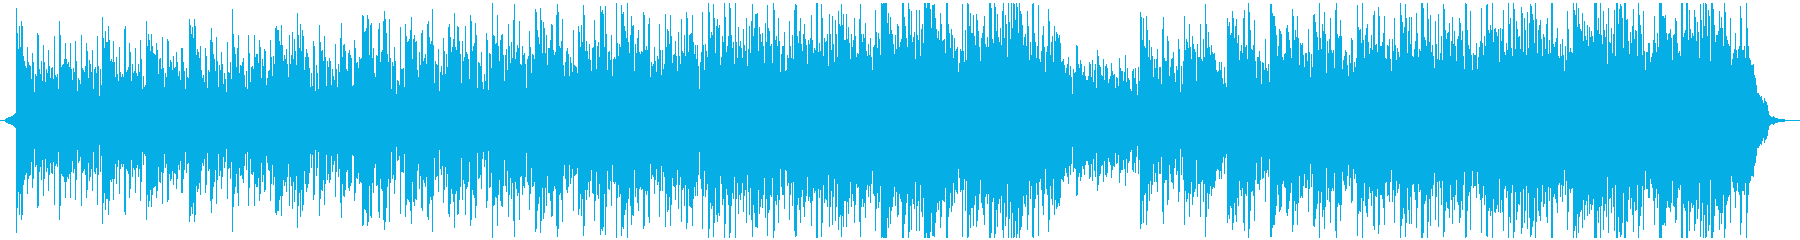 Corporate & Positive's reproduced waveform